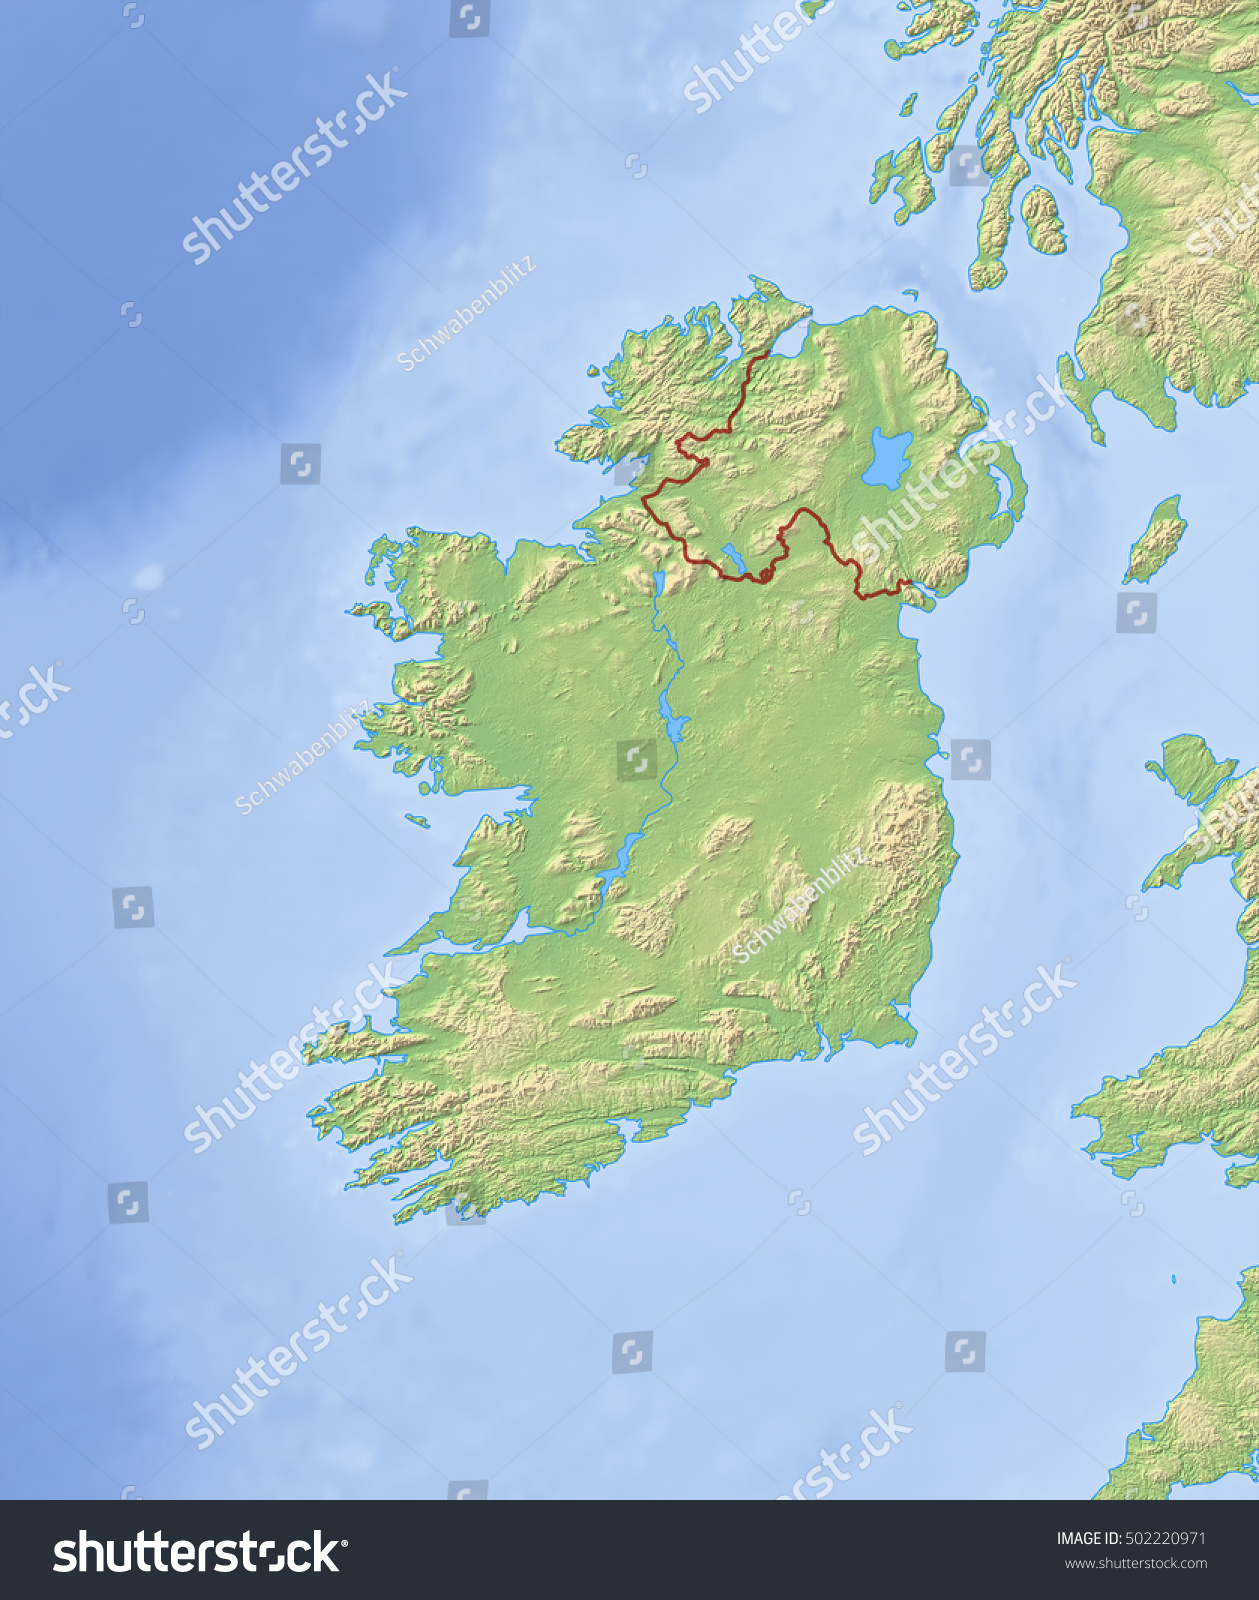 Physical Map Of Ireland Goolgle Maps Map Of England - Ireland physical map